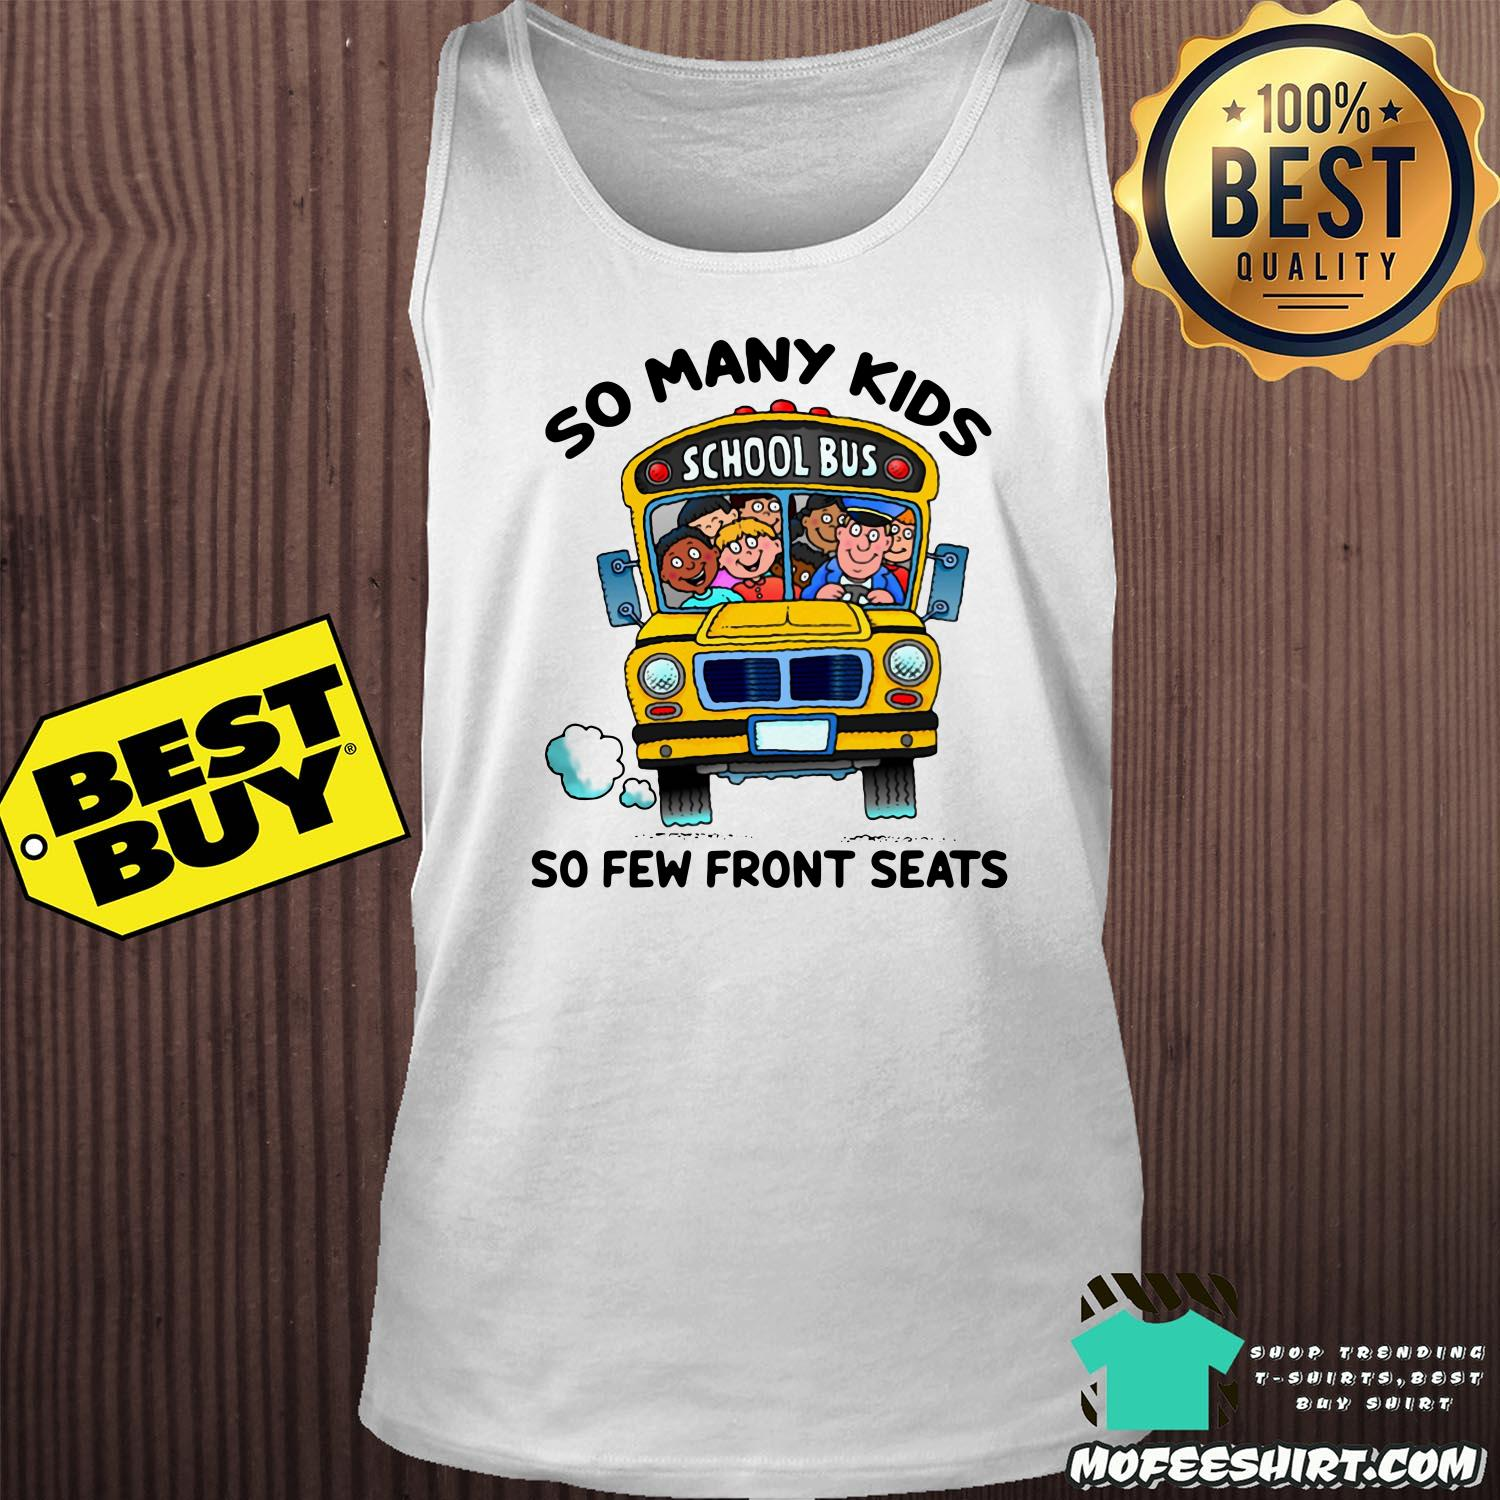 so many kids school bus so few front seats tank top - So Many Kids School Bus So Few Front Seats shirt